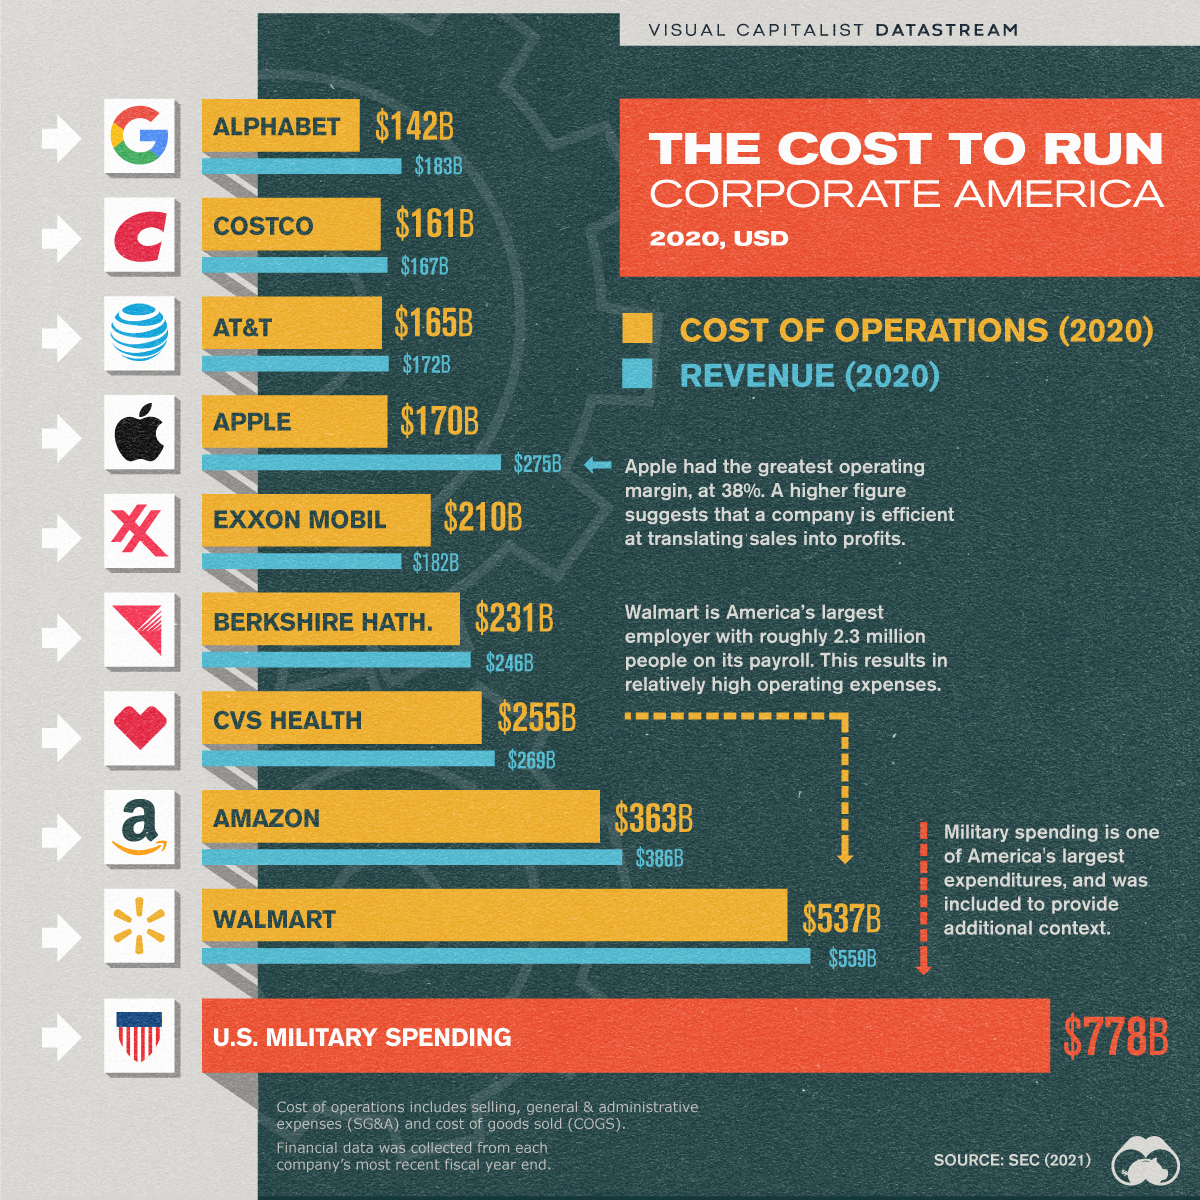 The cost to run big business